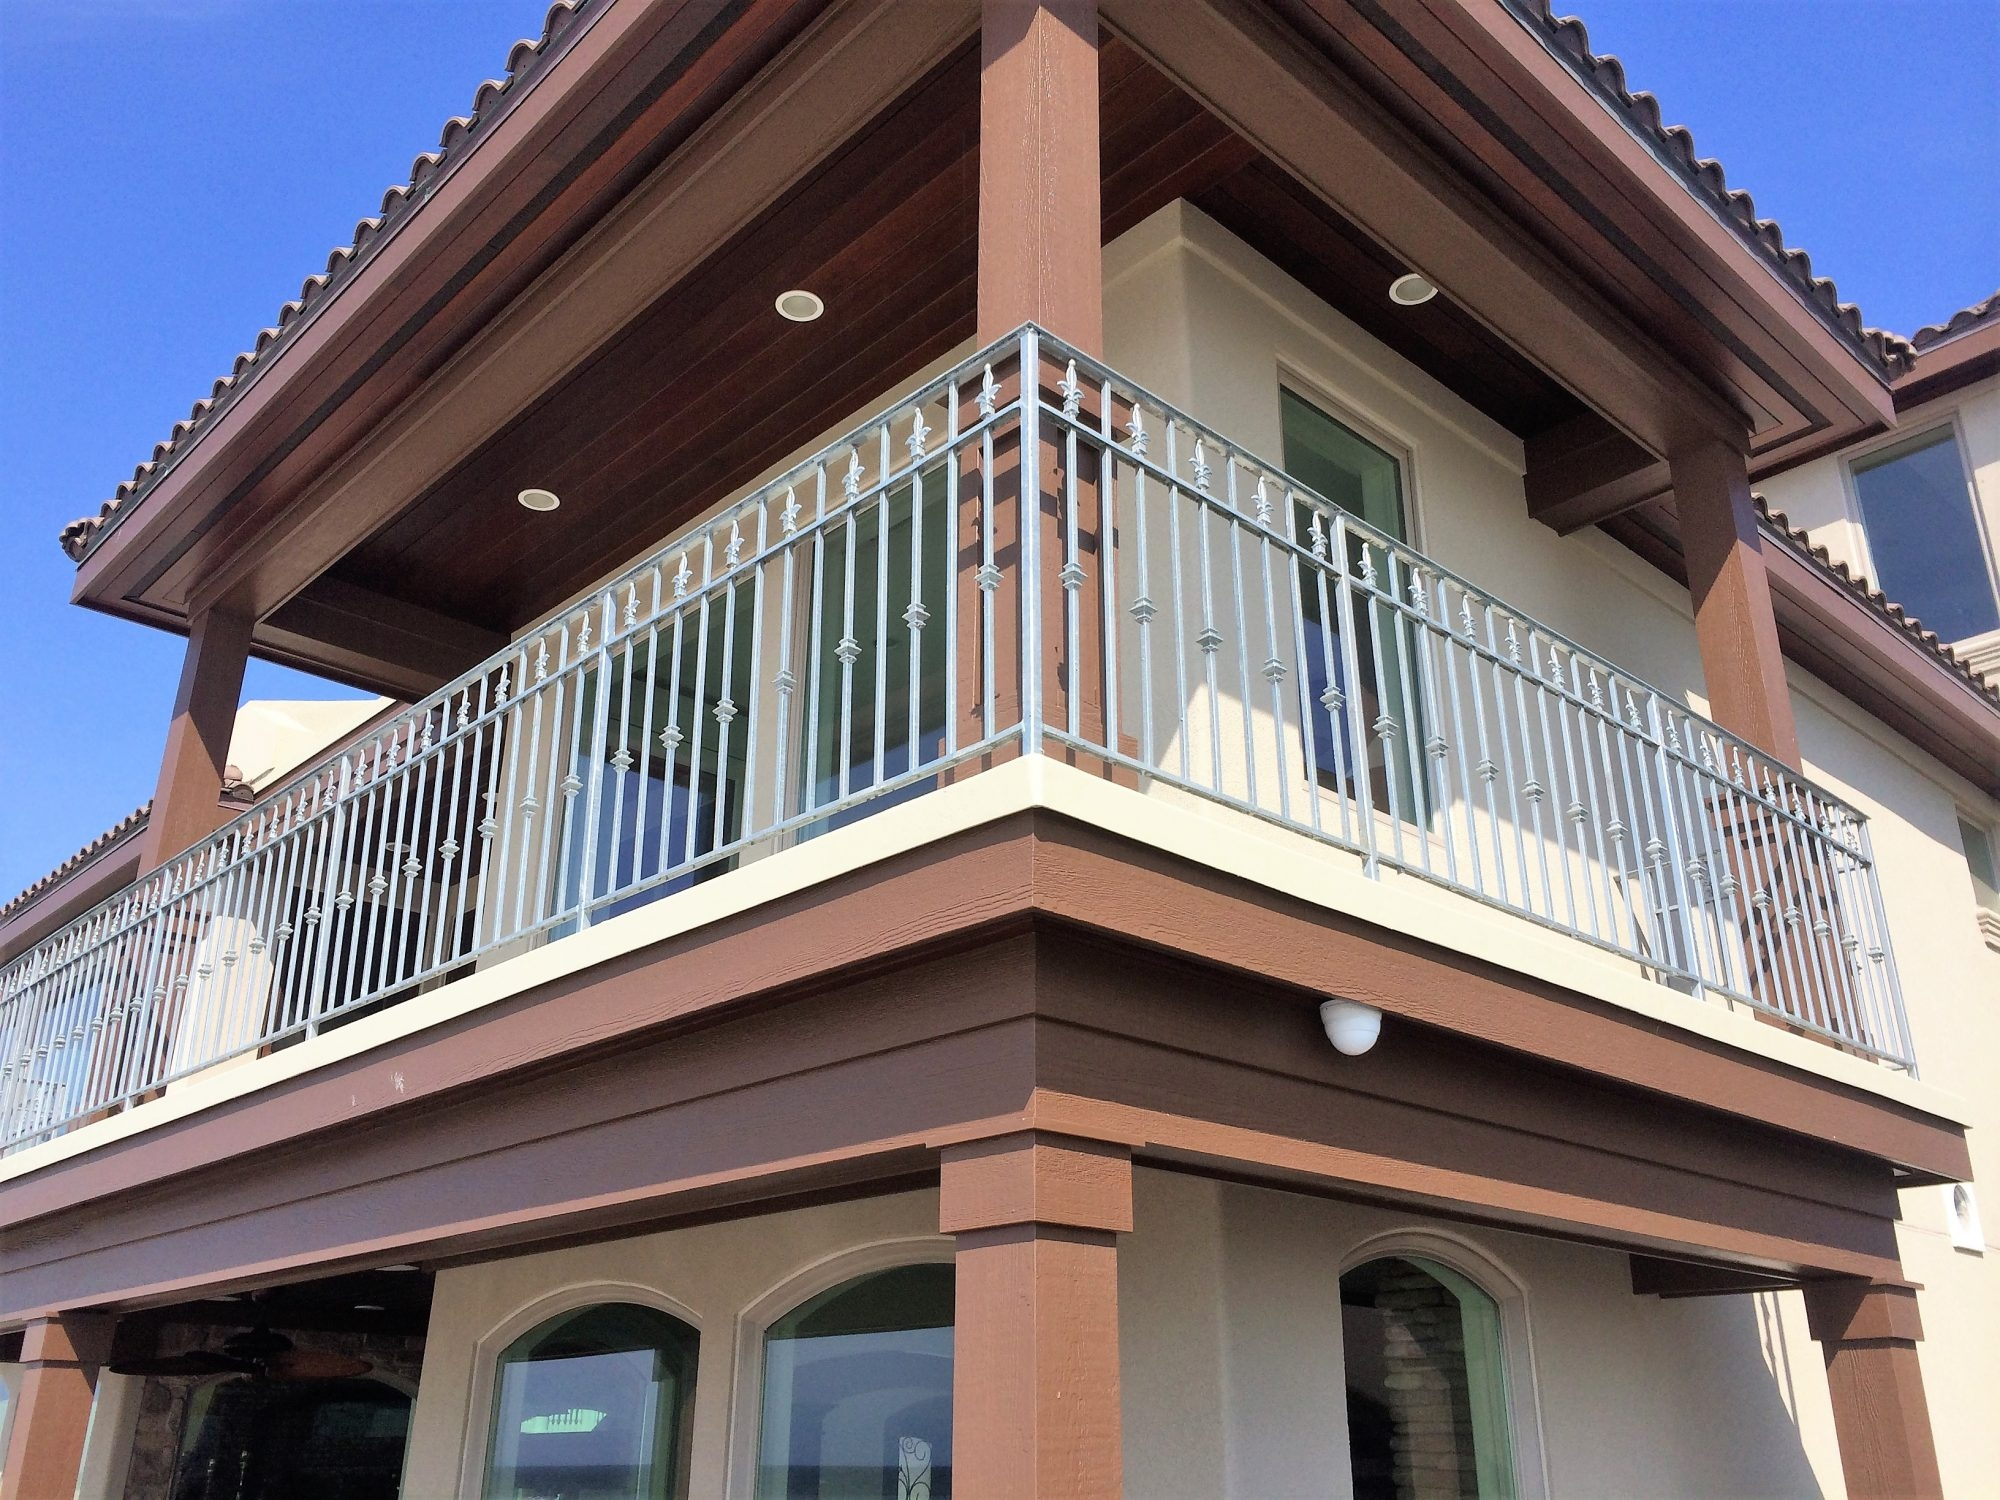 Wrought Iron Railing Systems New Jersey Mitchell Welding Iron | Contemporary Wrought Iron Railings | Victorian | Stainless Steel | Glass | Wood | Decorative